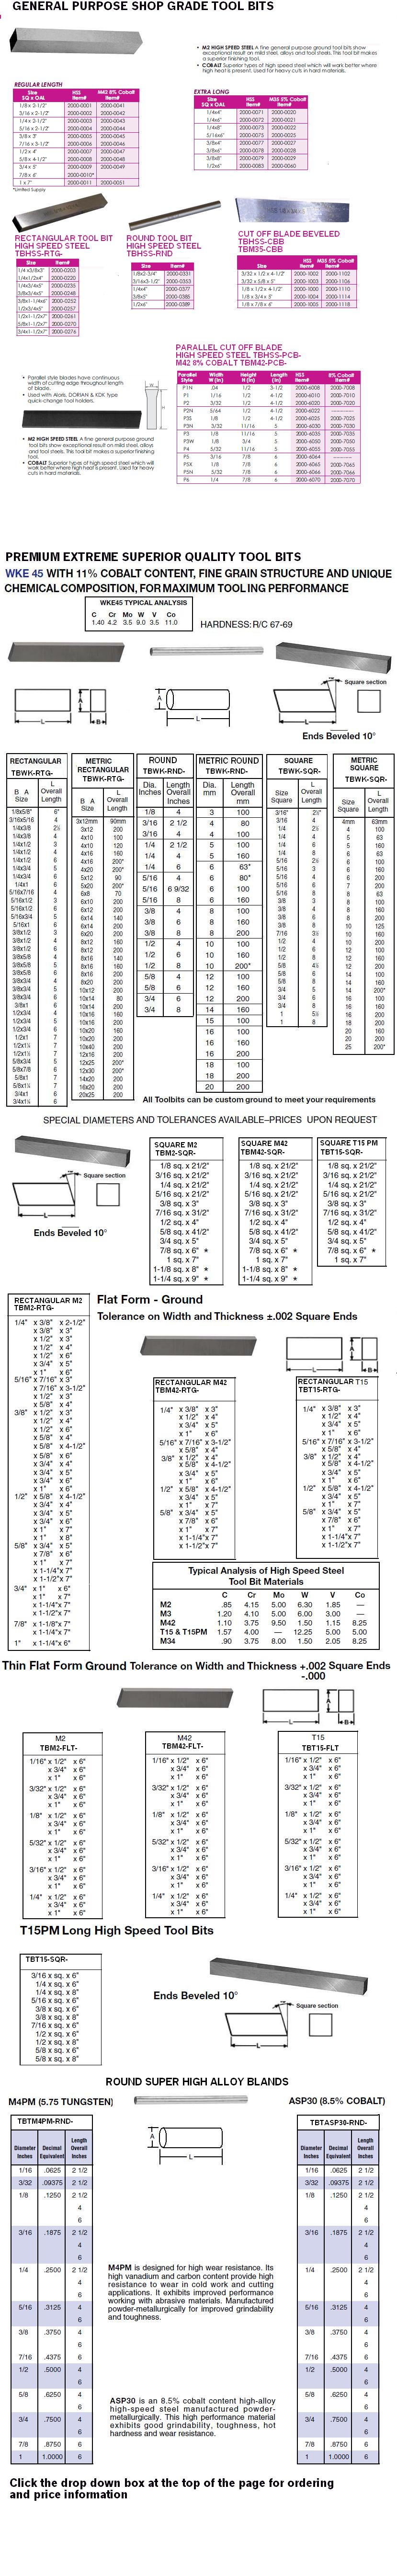 Tool Bits, Part Off, Cut Off, Blades High Speed Steel, Cobalt, Round Square Rectangular